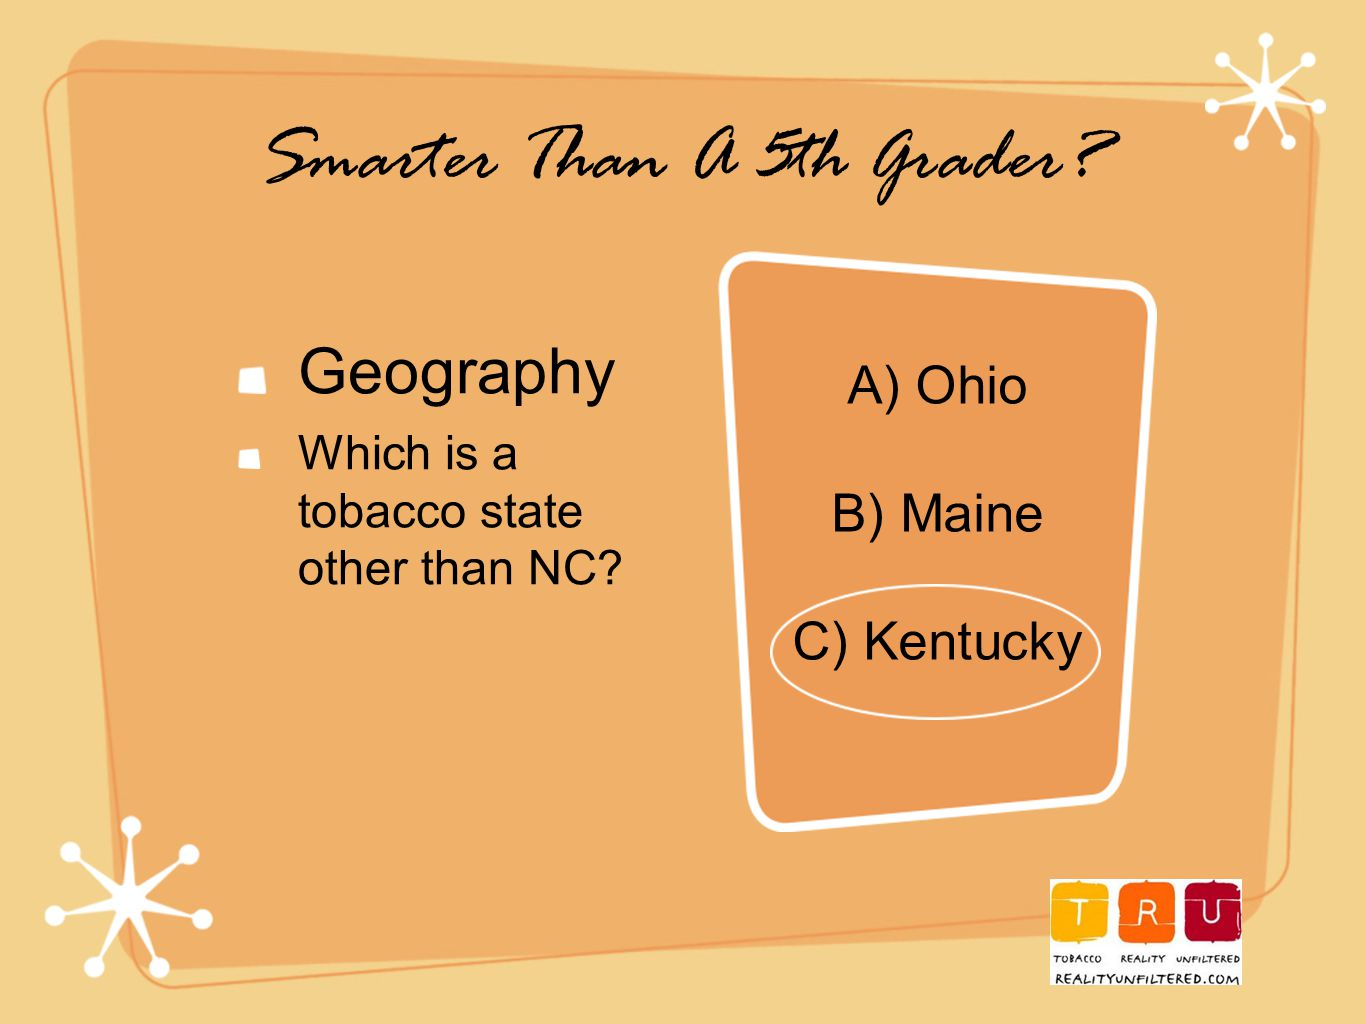 Smarter Than A 5th Grader. Geography Which is a tobacco state other than NC.